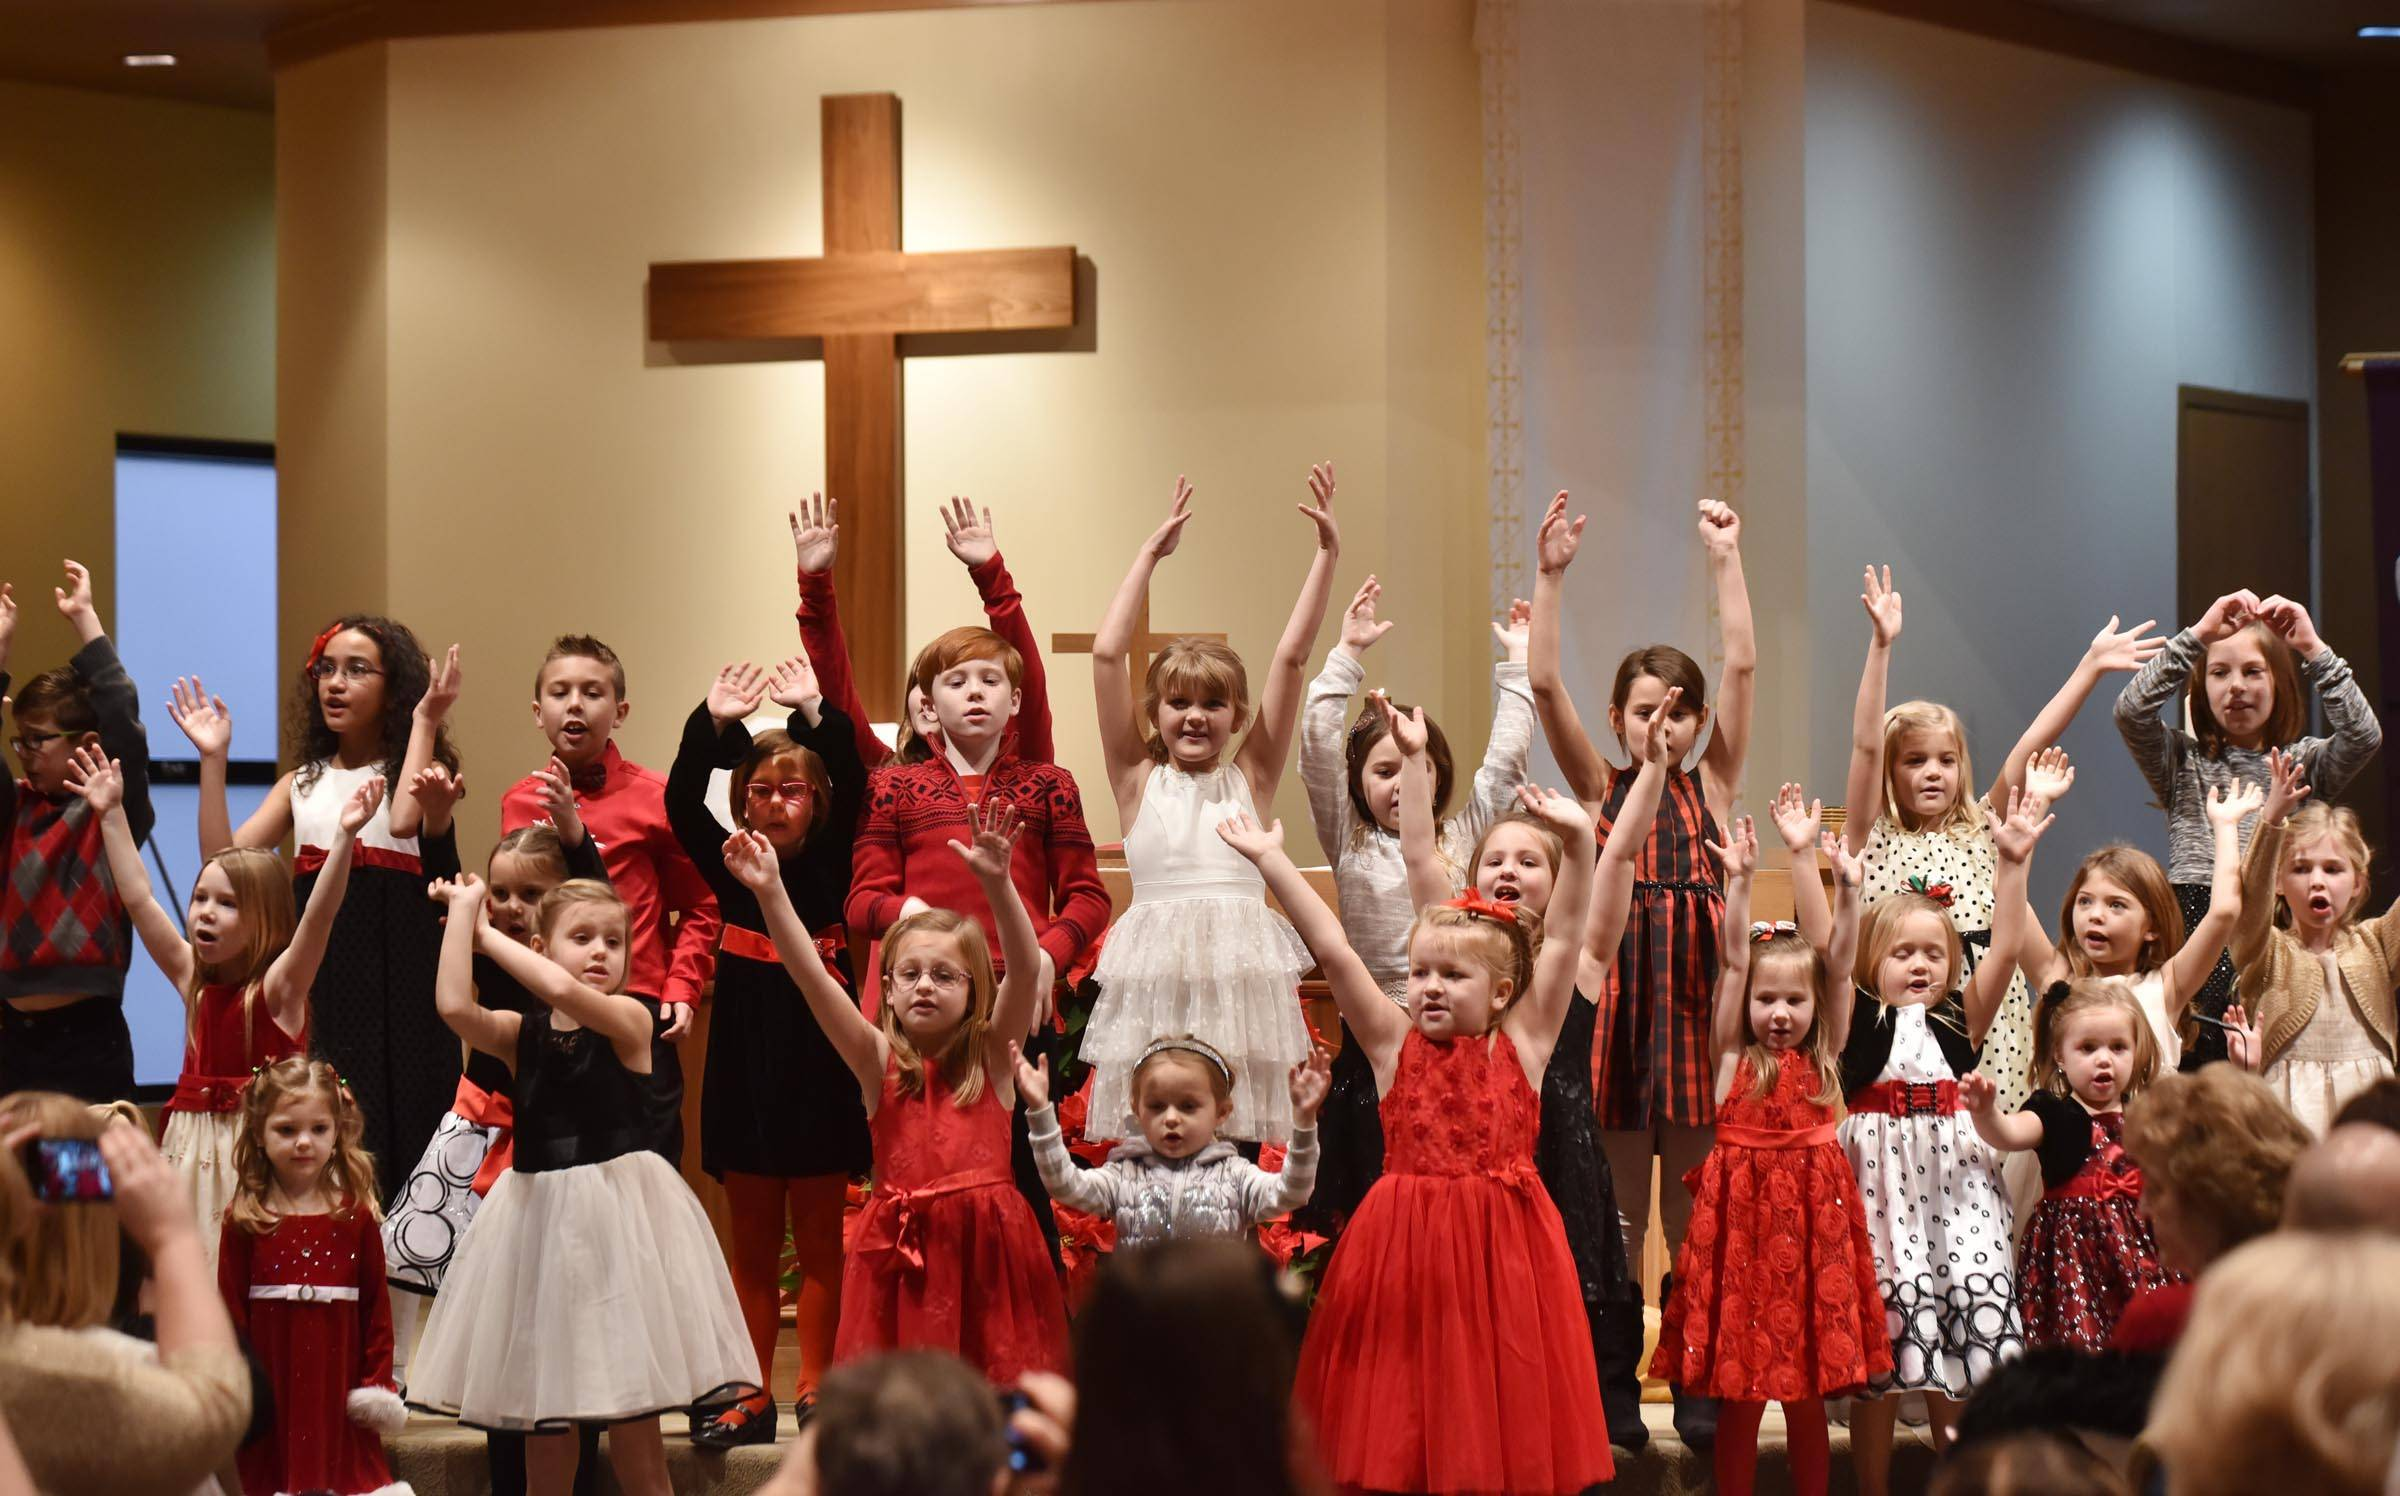 The children's choir performs Thursday at a Christmas service at Hosanna! Lutheran Church in St. Charles.